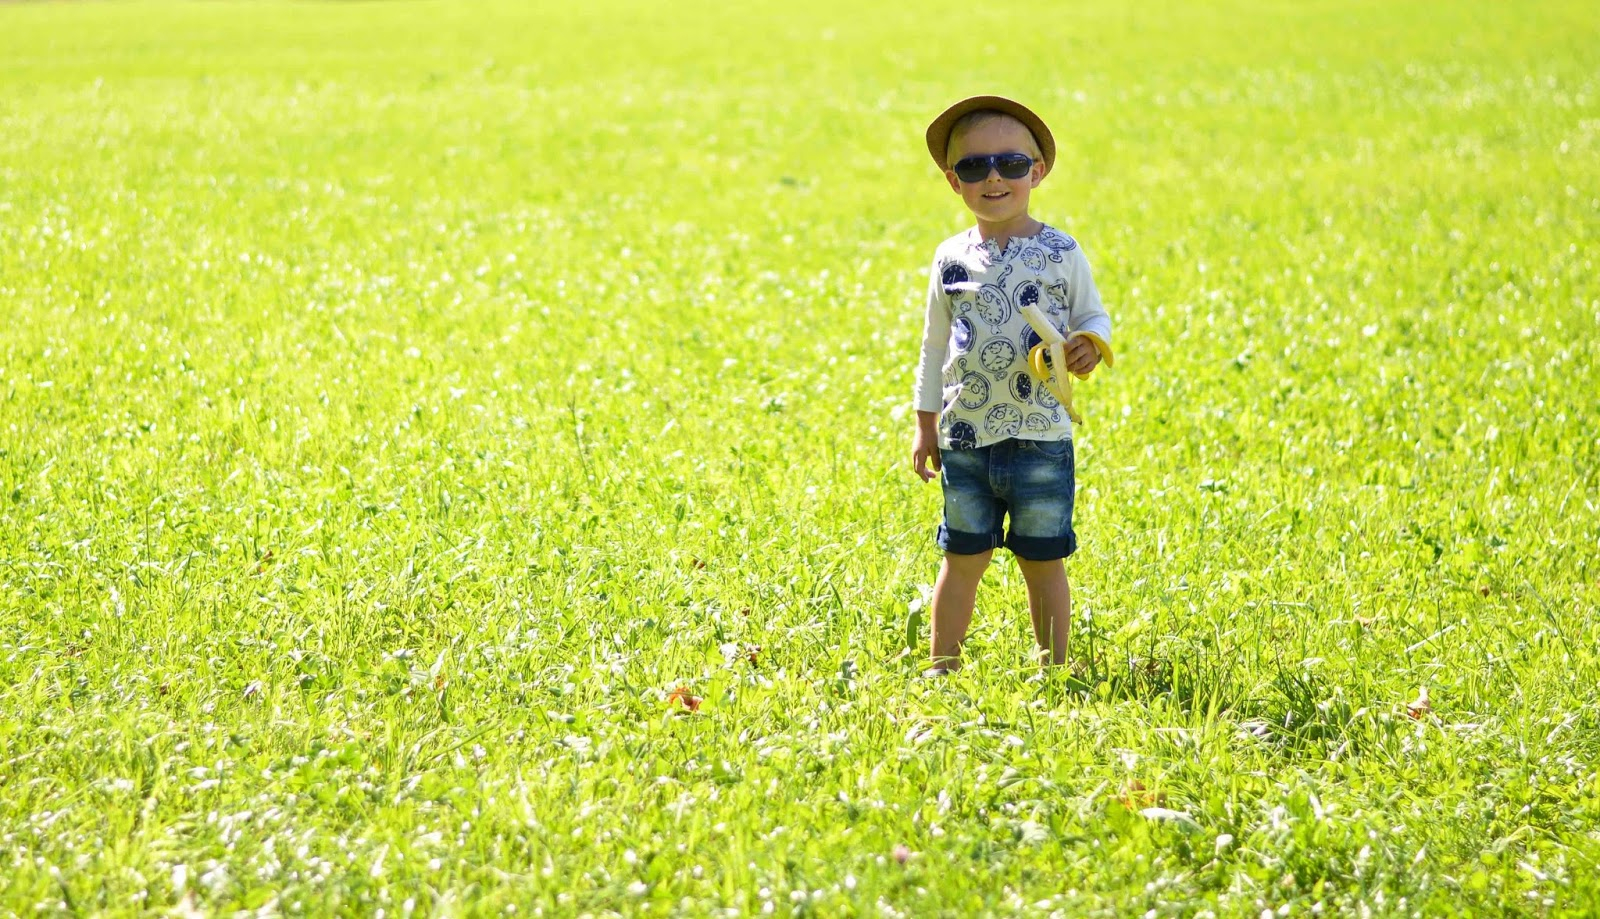 tegernsee grass field toddler